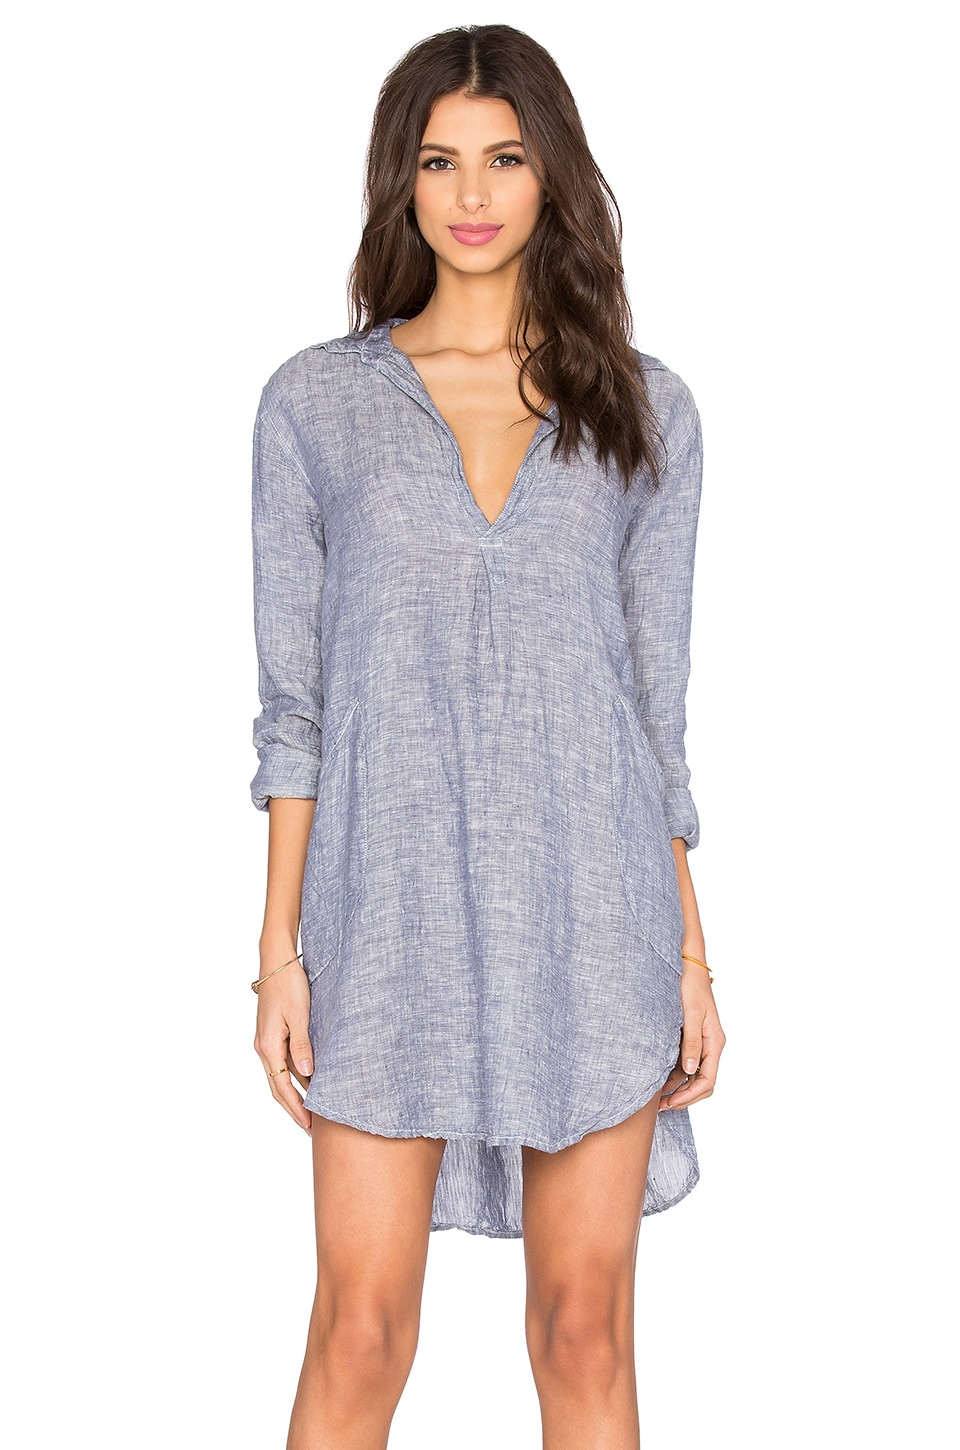 CP SHADES Teton Tunic Dress in Medium Blue